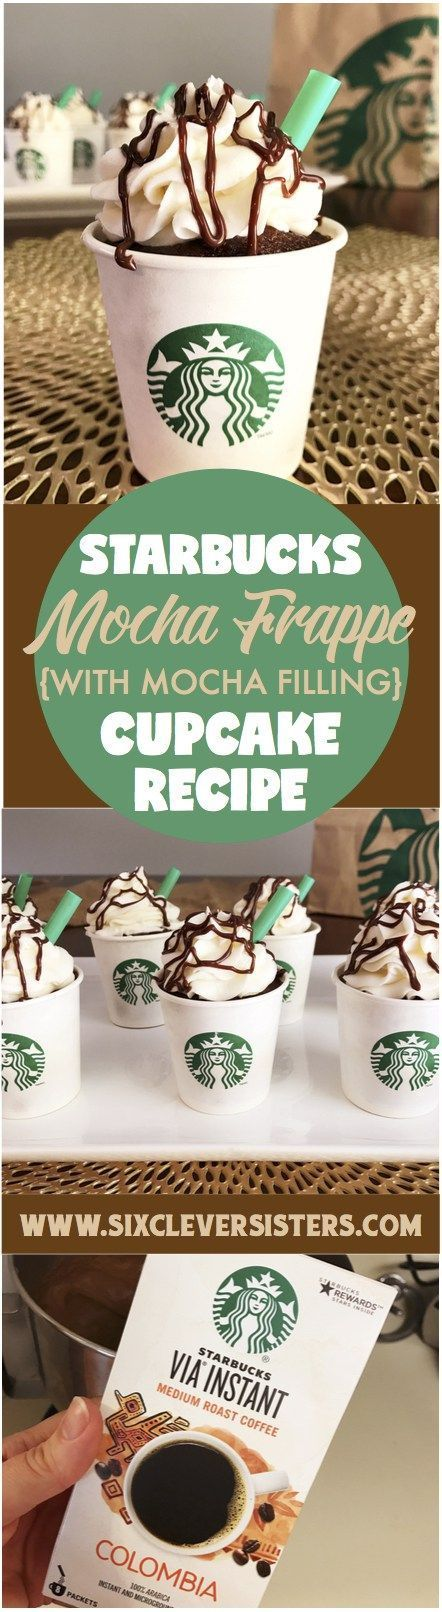 Starbucks Mocha Frappe Cupcakes Calling all Starbucks lovers! These mocha frappe cupcakes are a lot simpler to make than they look and are perfect for celebrating with the Starbucks fan. Check out these Mocha Frappe Drinks on Six Clever Sisters!